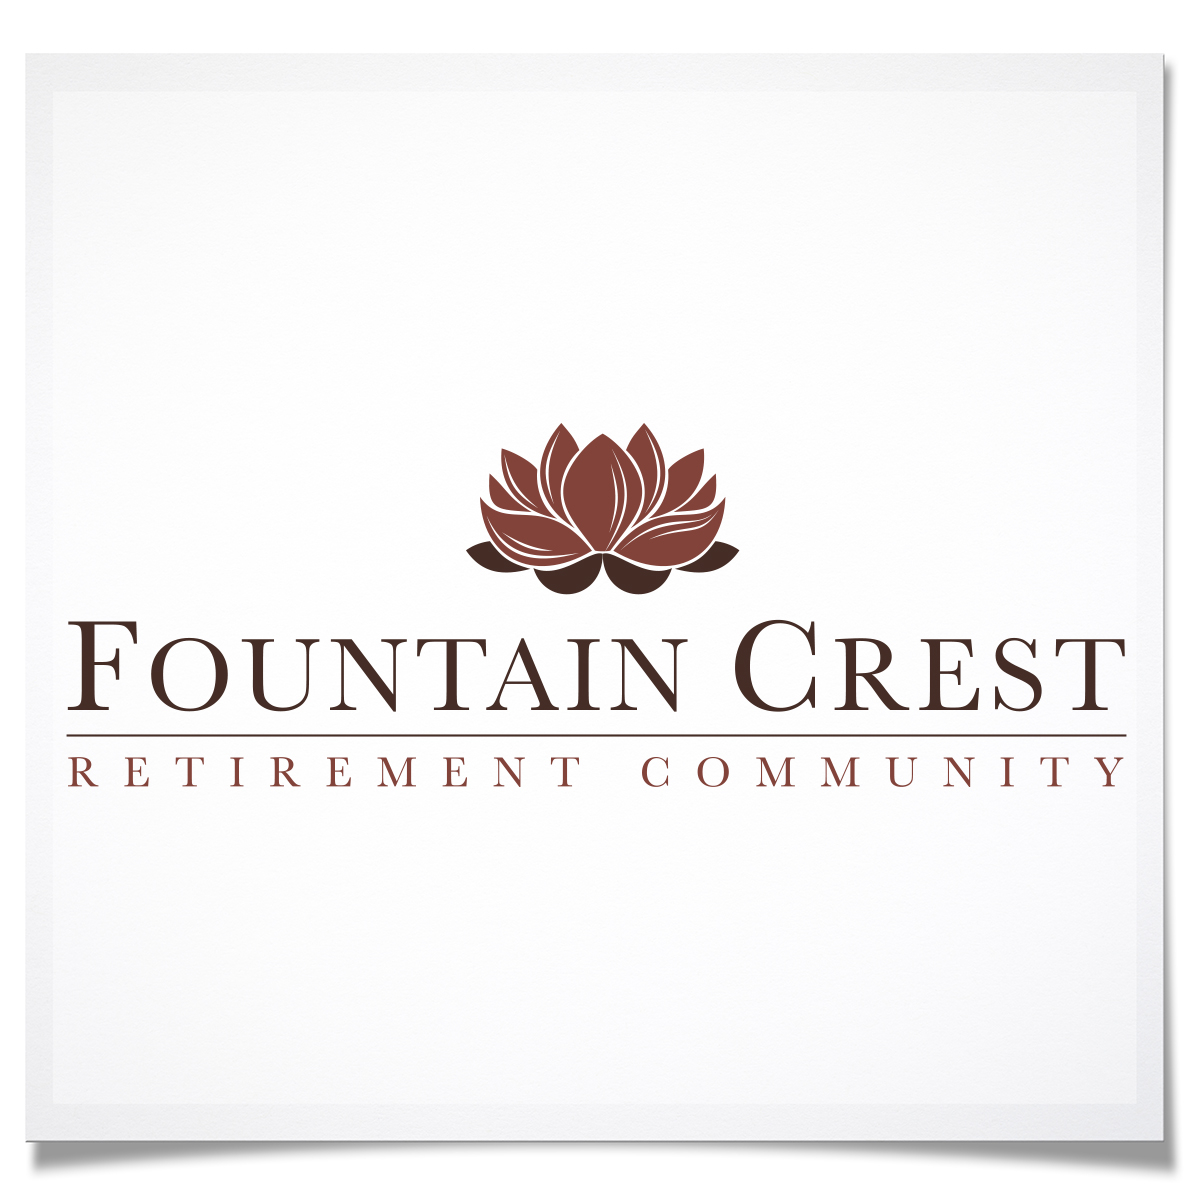 Fountain Crest Retirement Community